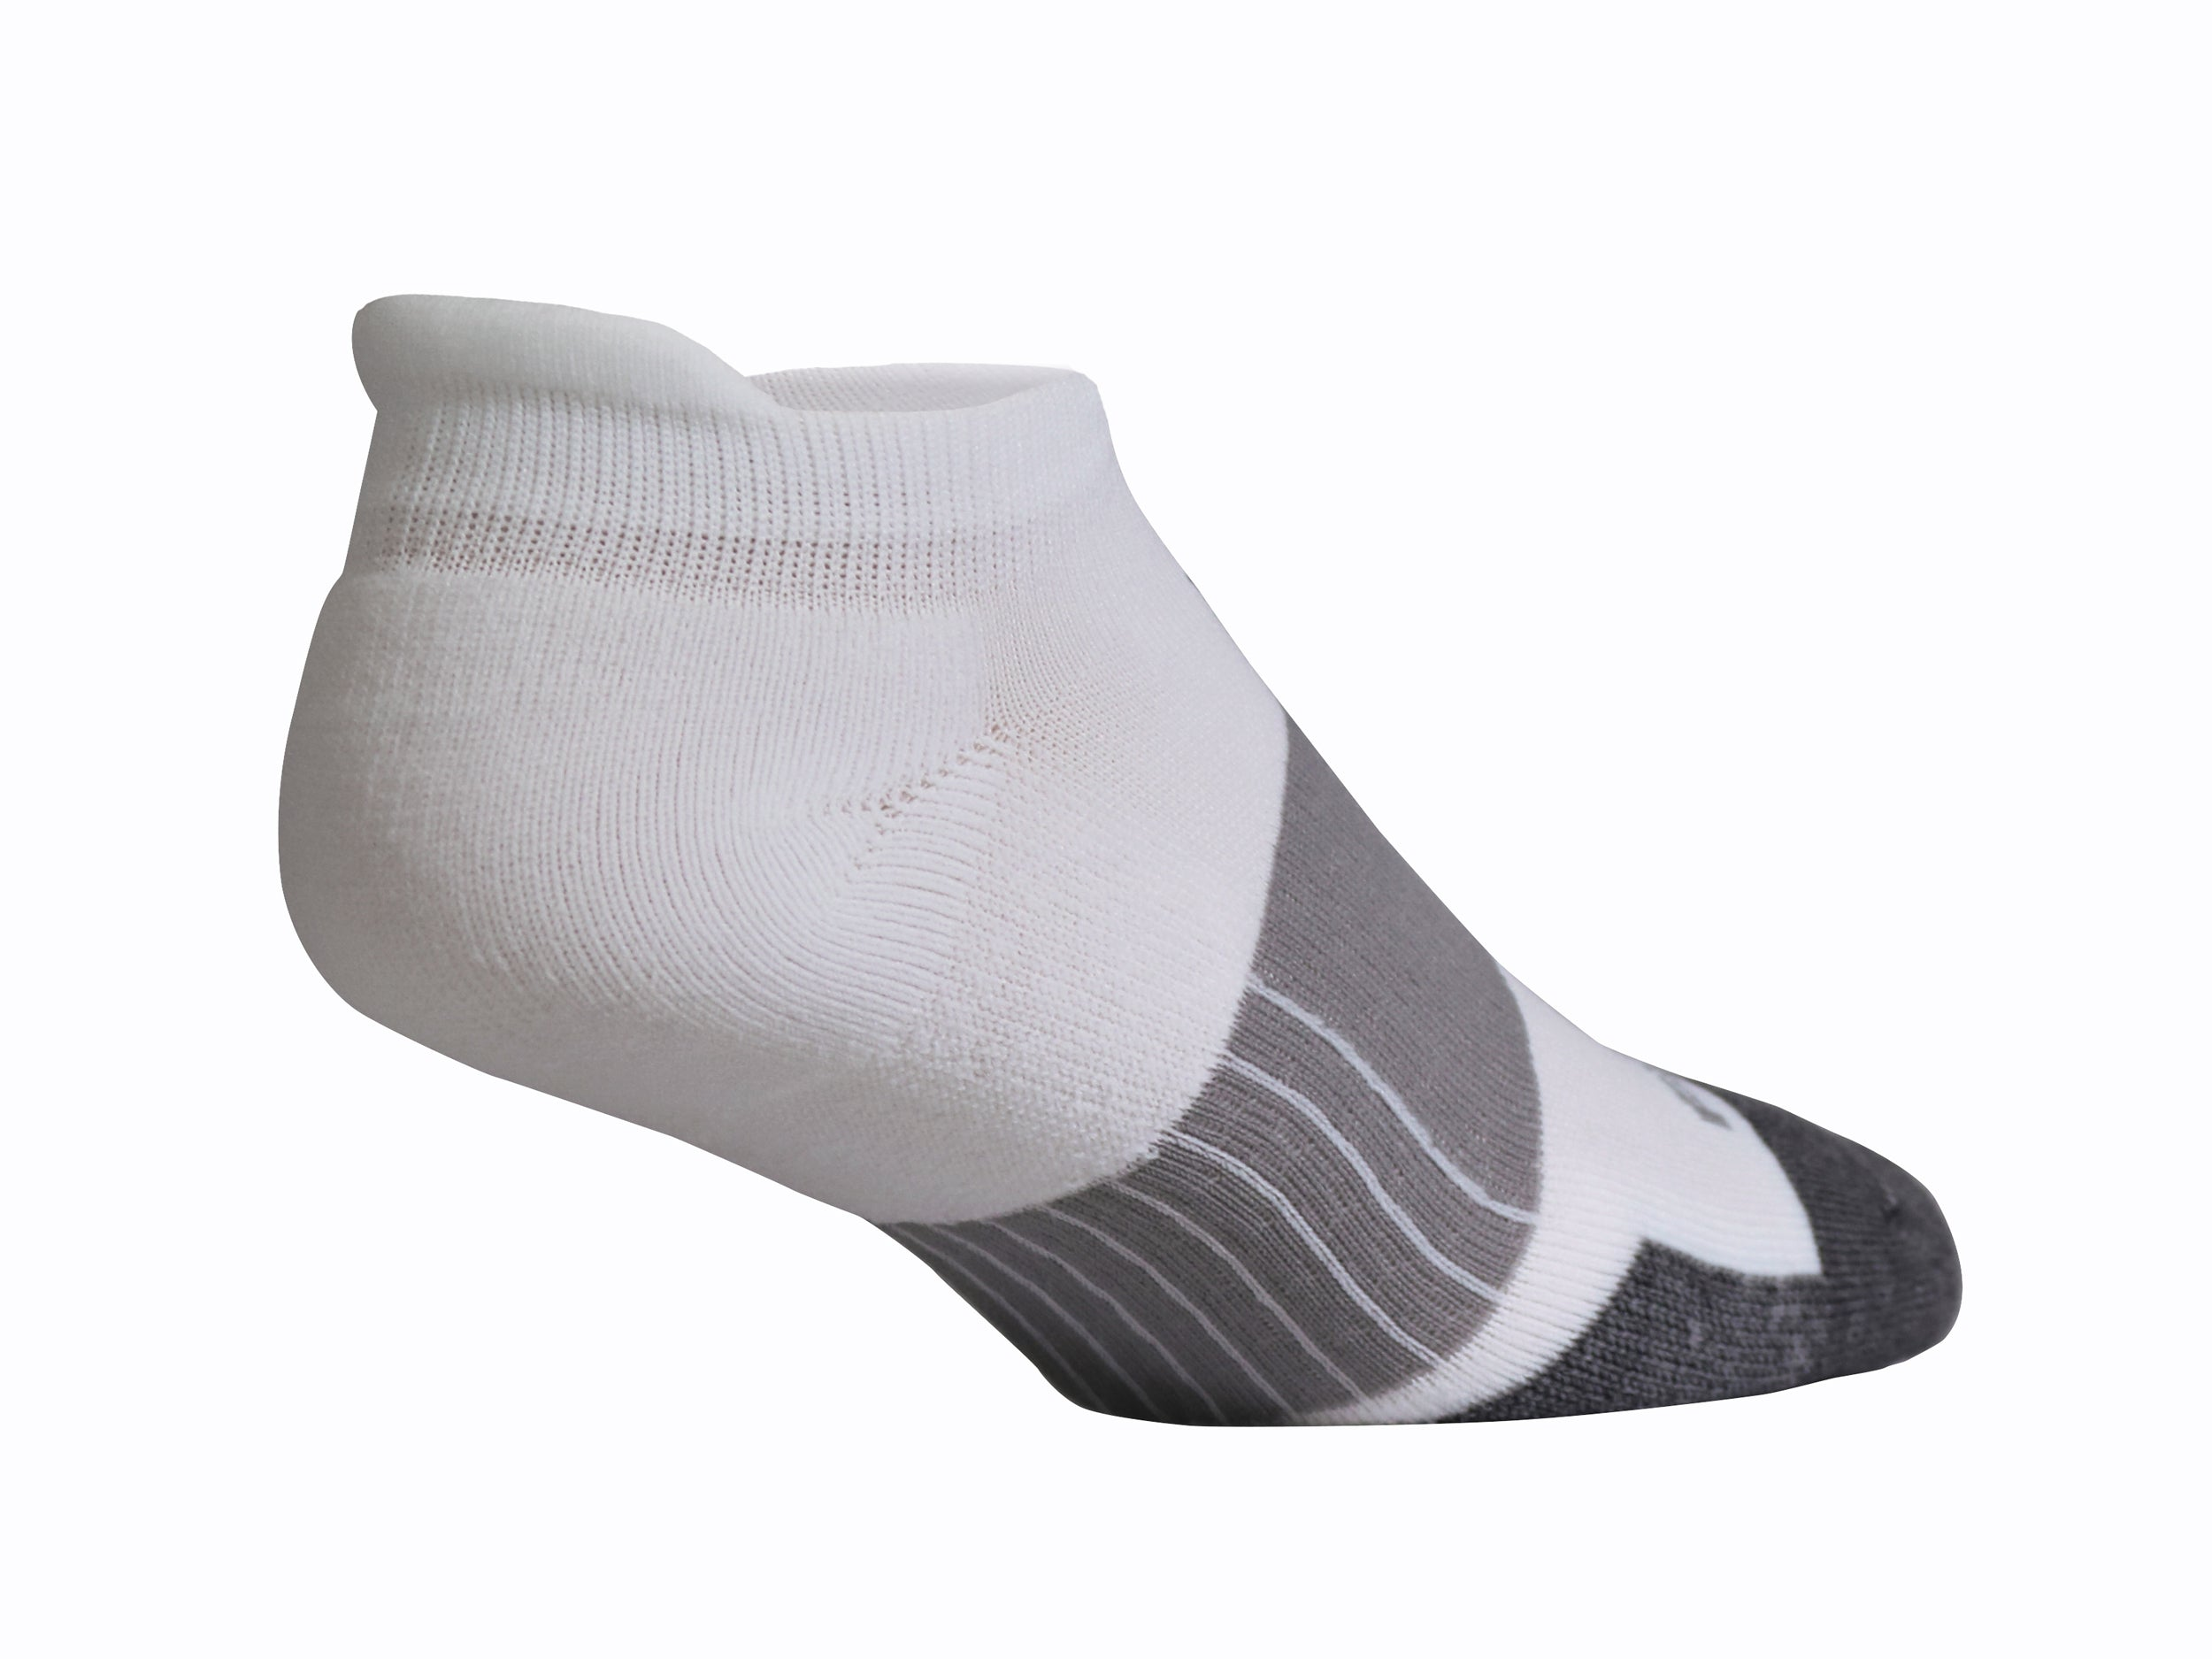 NP7 Mid-weight Tab (White & Gray) - Fitsok.com